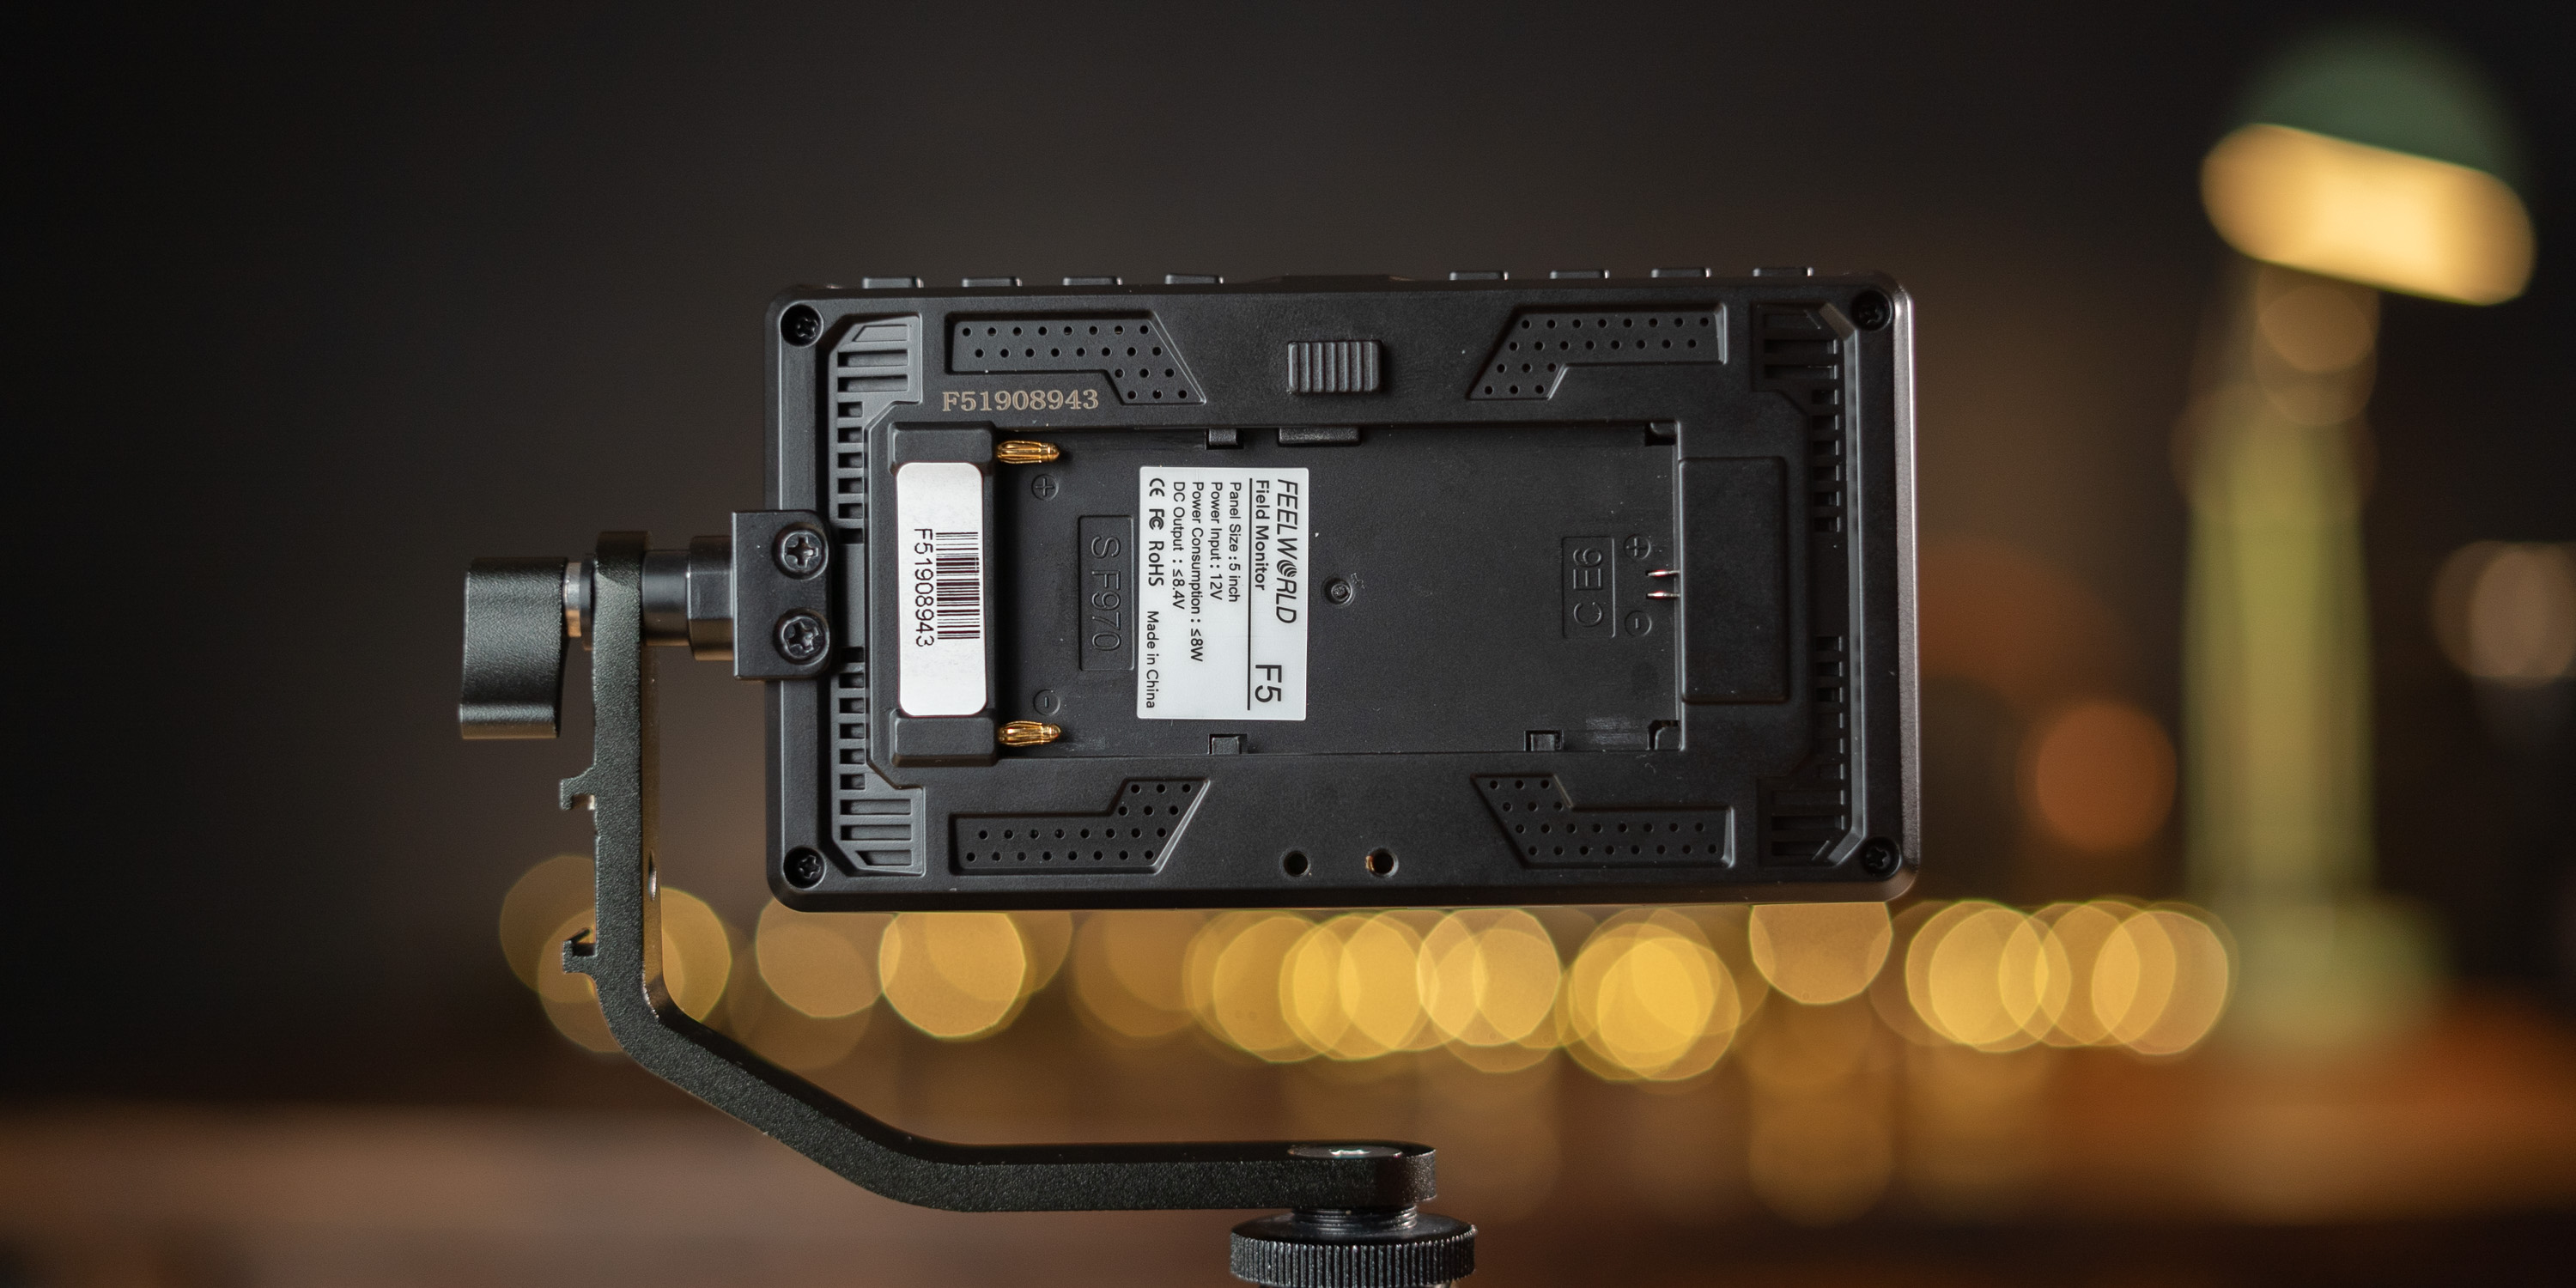 Battery mount on the Feelworld F5